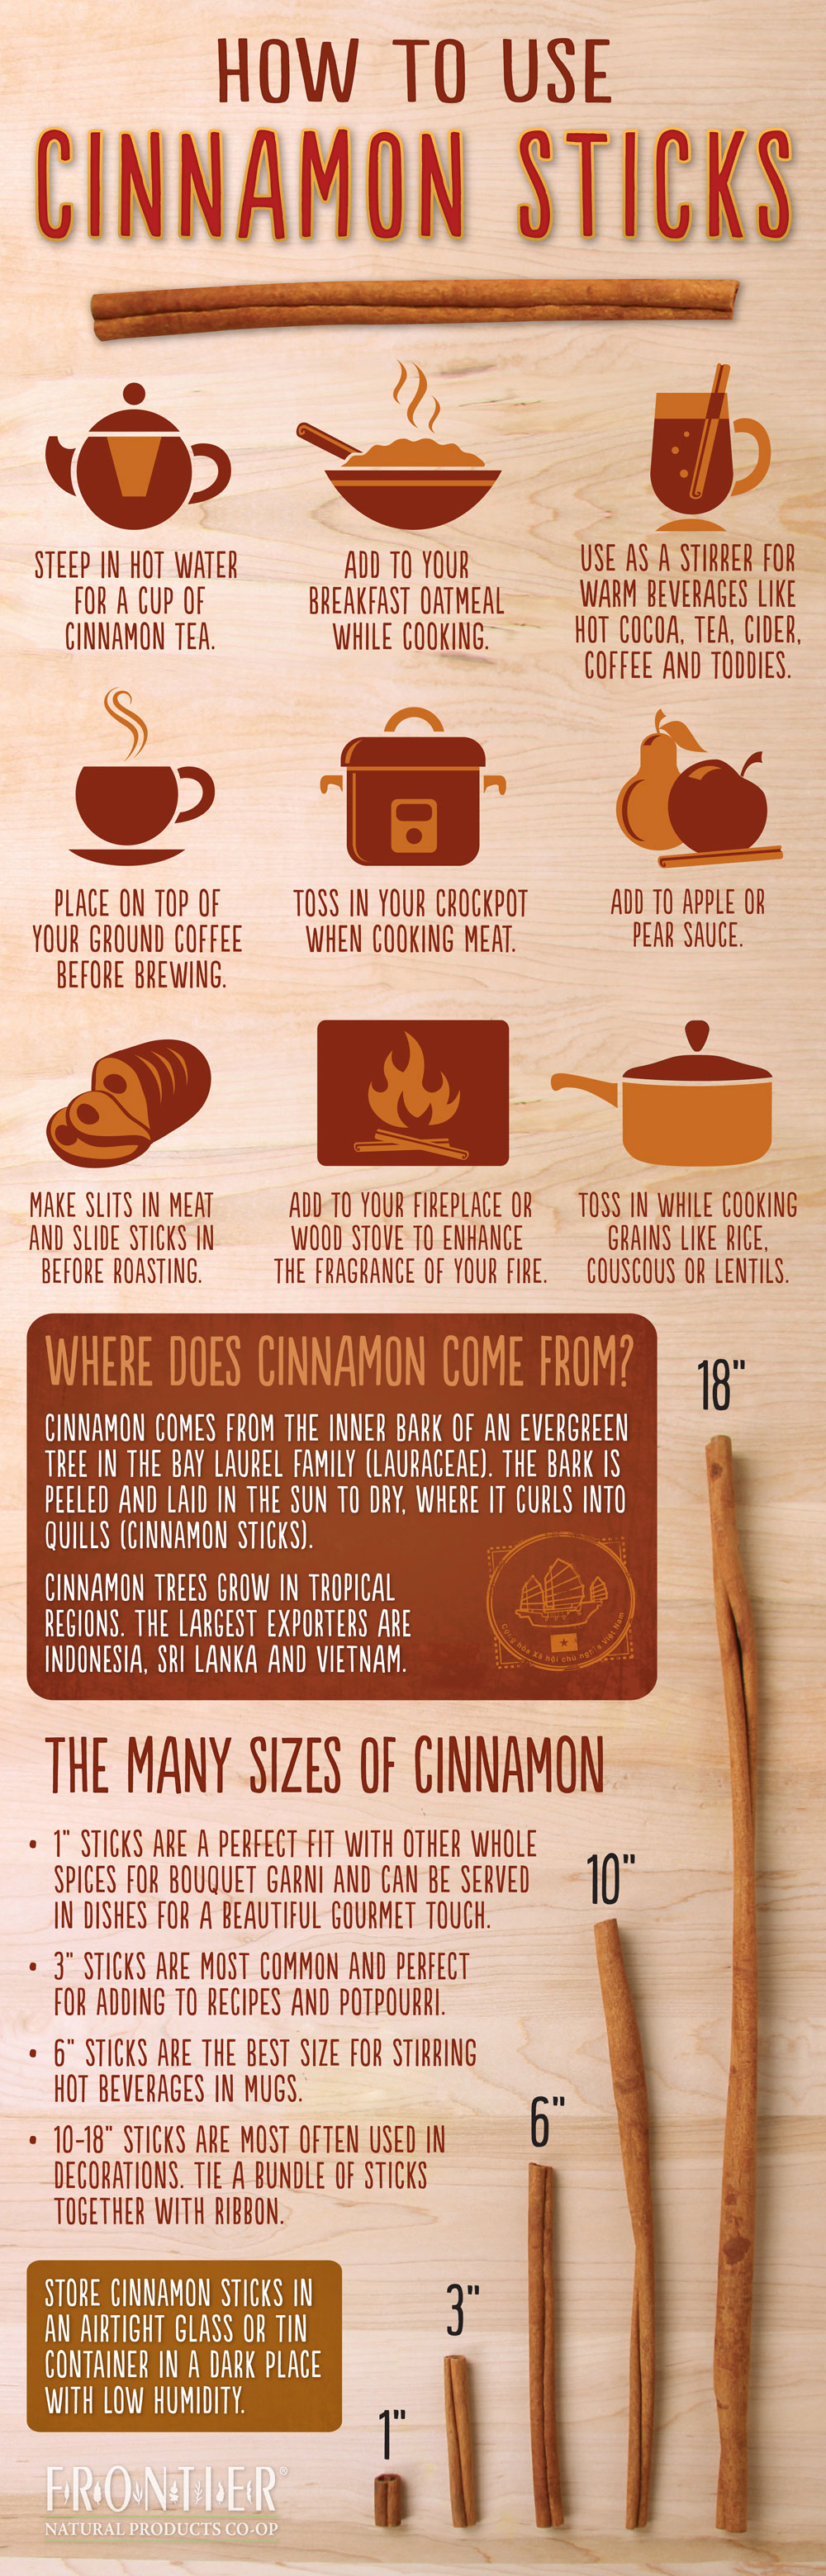 infographic-cinnamond-sticks